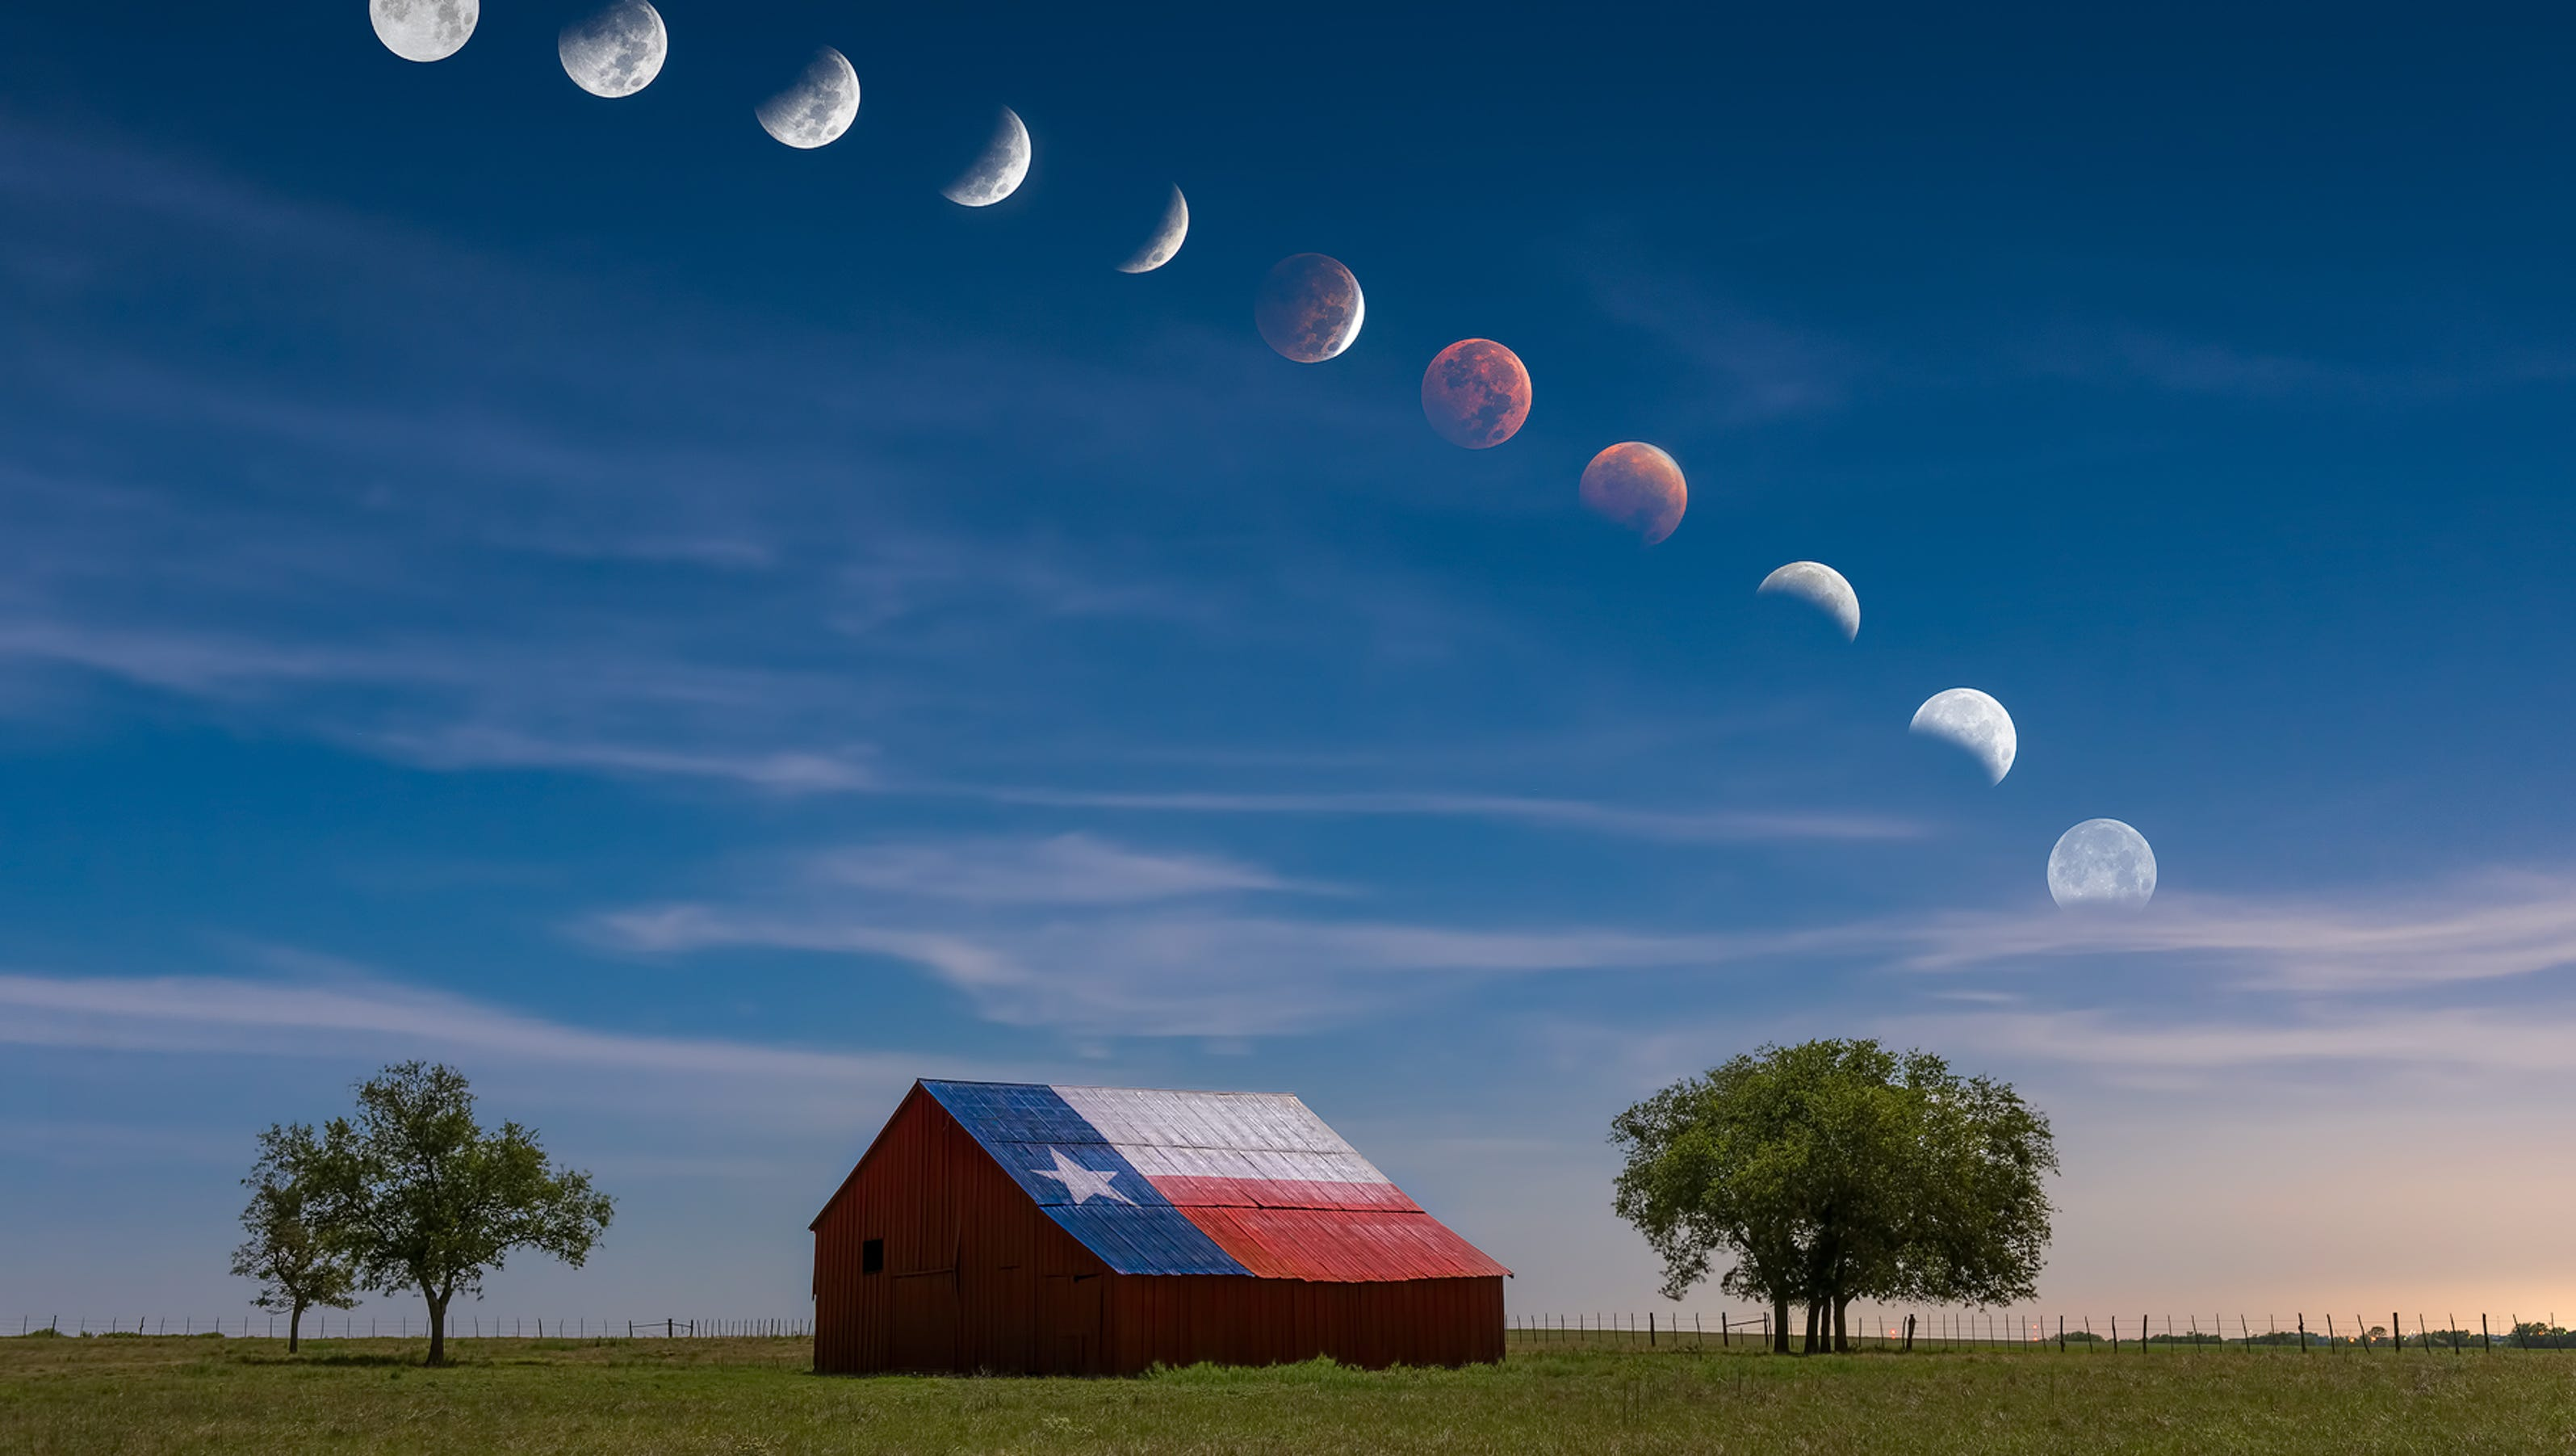 blood moon today in texas - photo #11